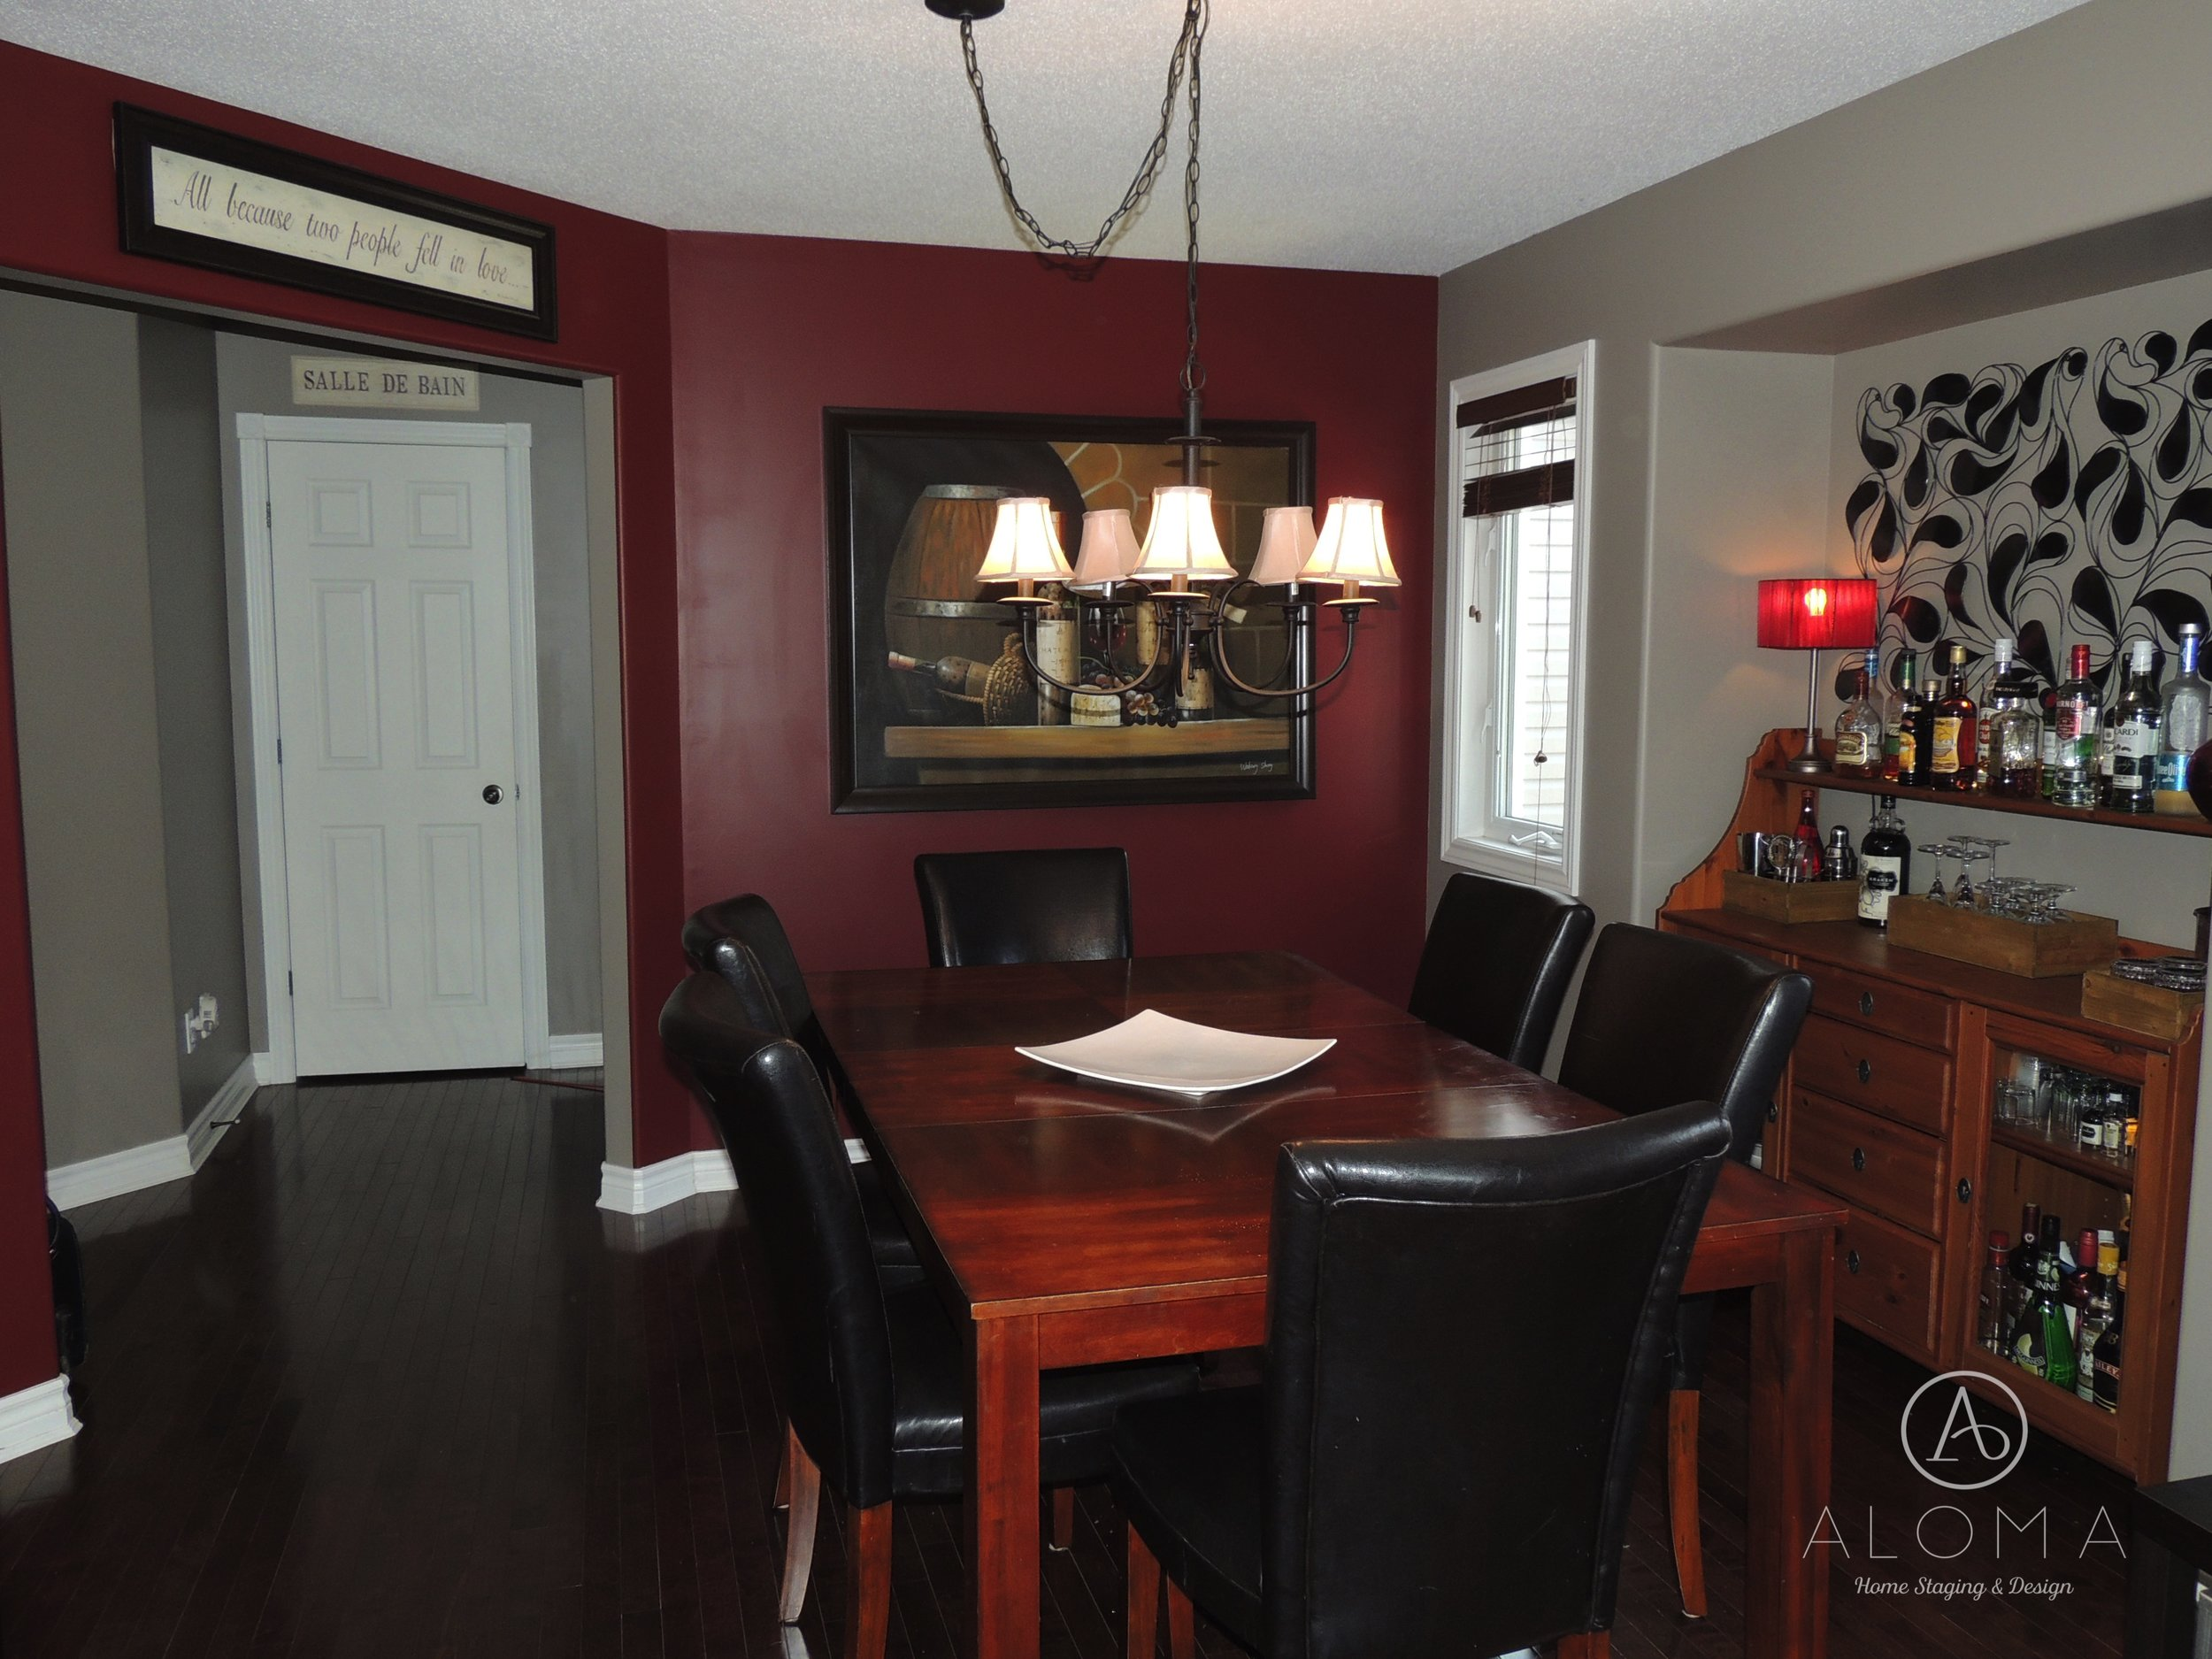 Before-Dining room-ALOMA Home Staging & Design